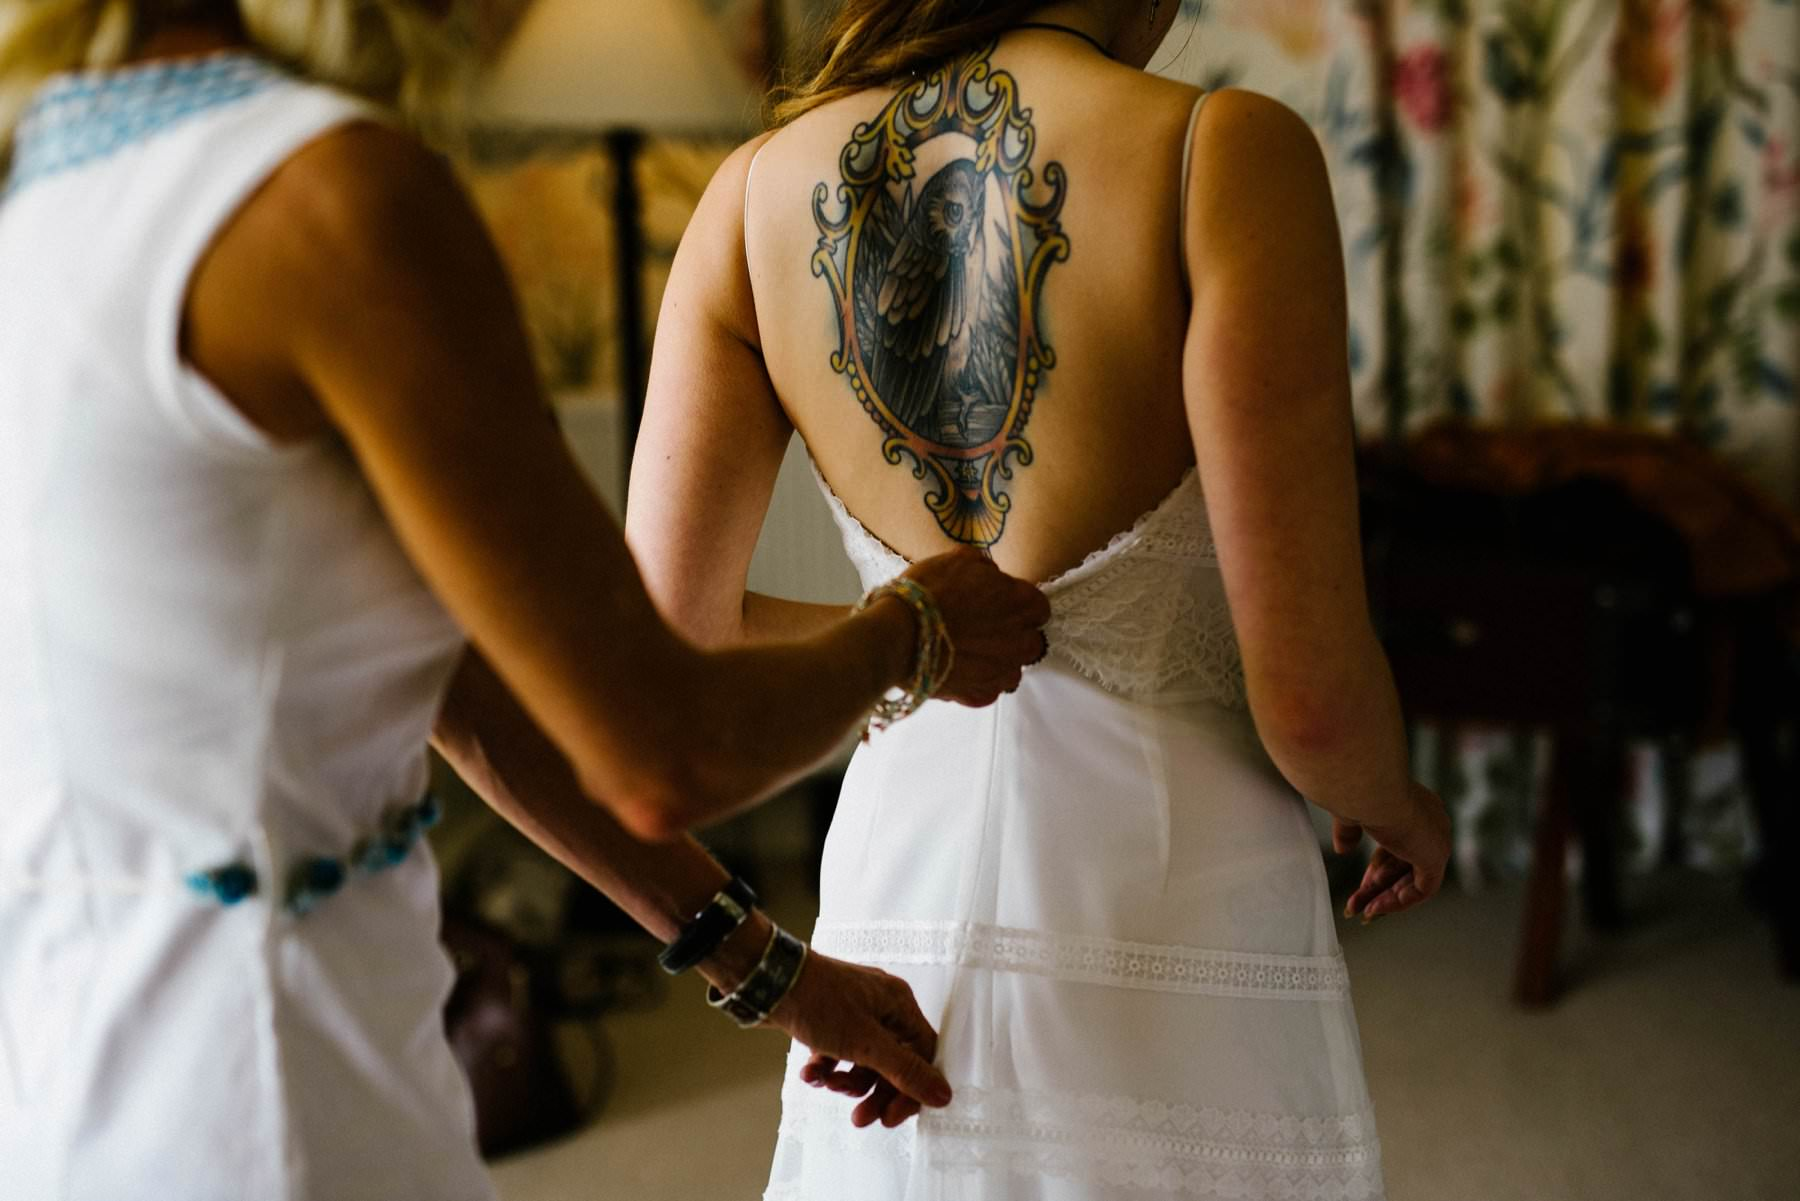 tattoo bride getting ready for wedding photography ireland